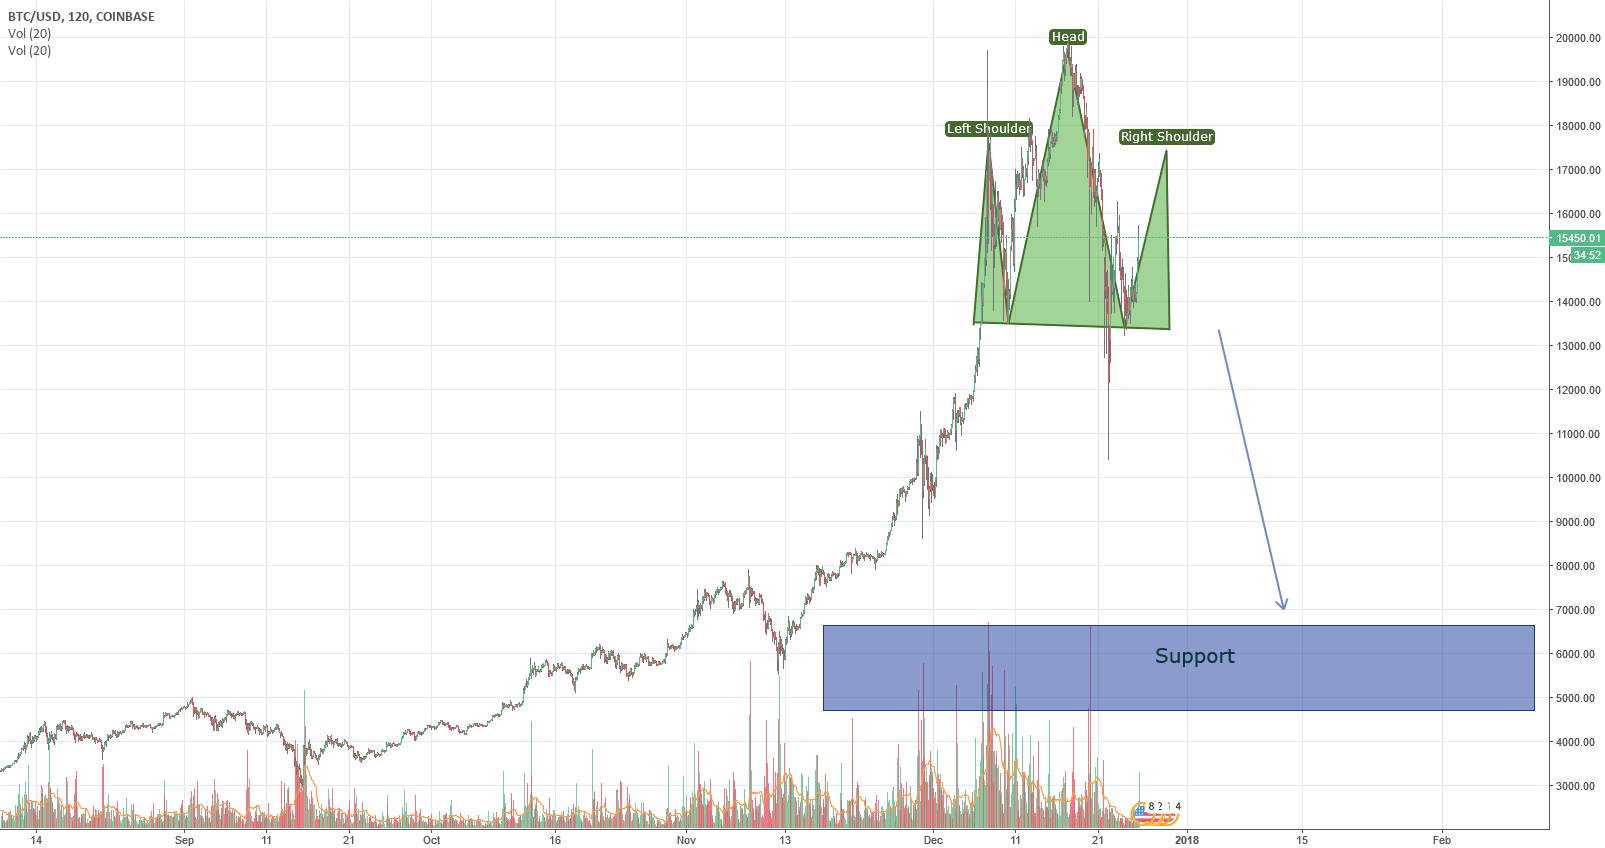 BTC - Huge correction upcomig - Just as expected [5000$ range]